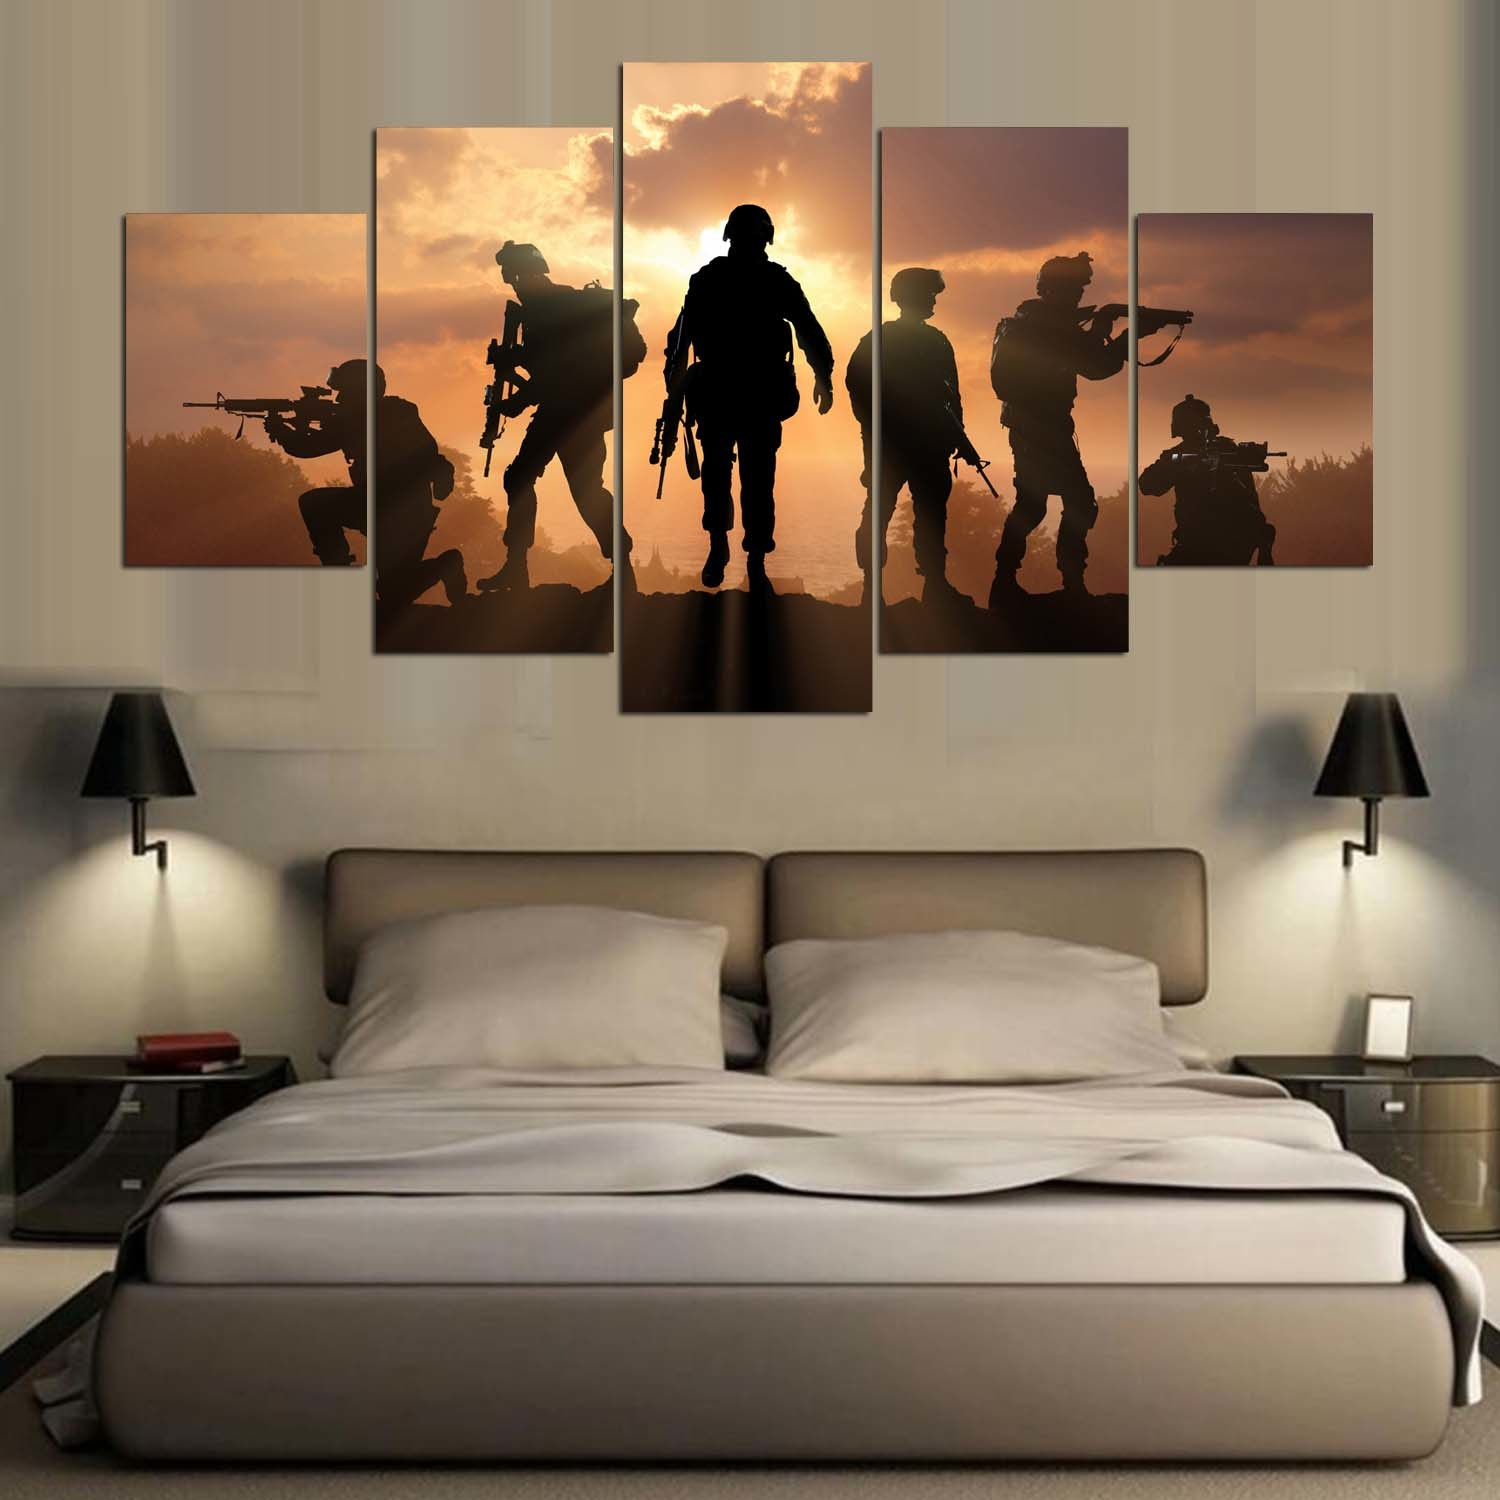 5 Panel HD Printed Painting Canvas Print Art Modern Home Decor Wall Art Pictures for Living Room Army Poster on Canvas Mc-156